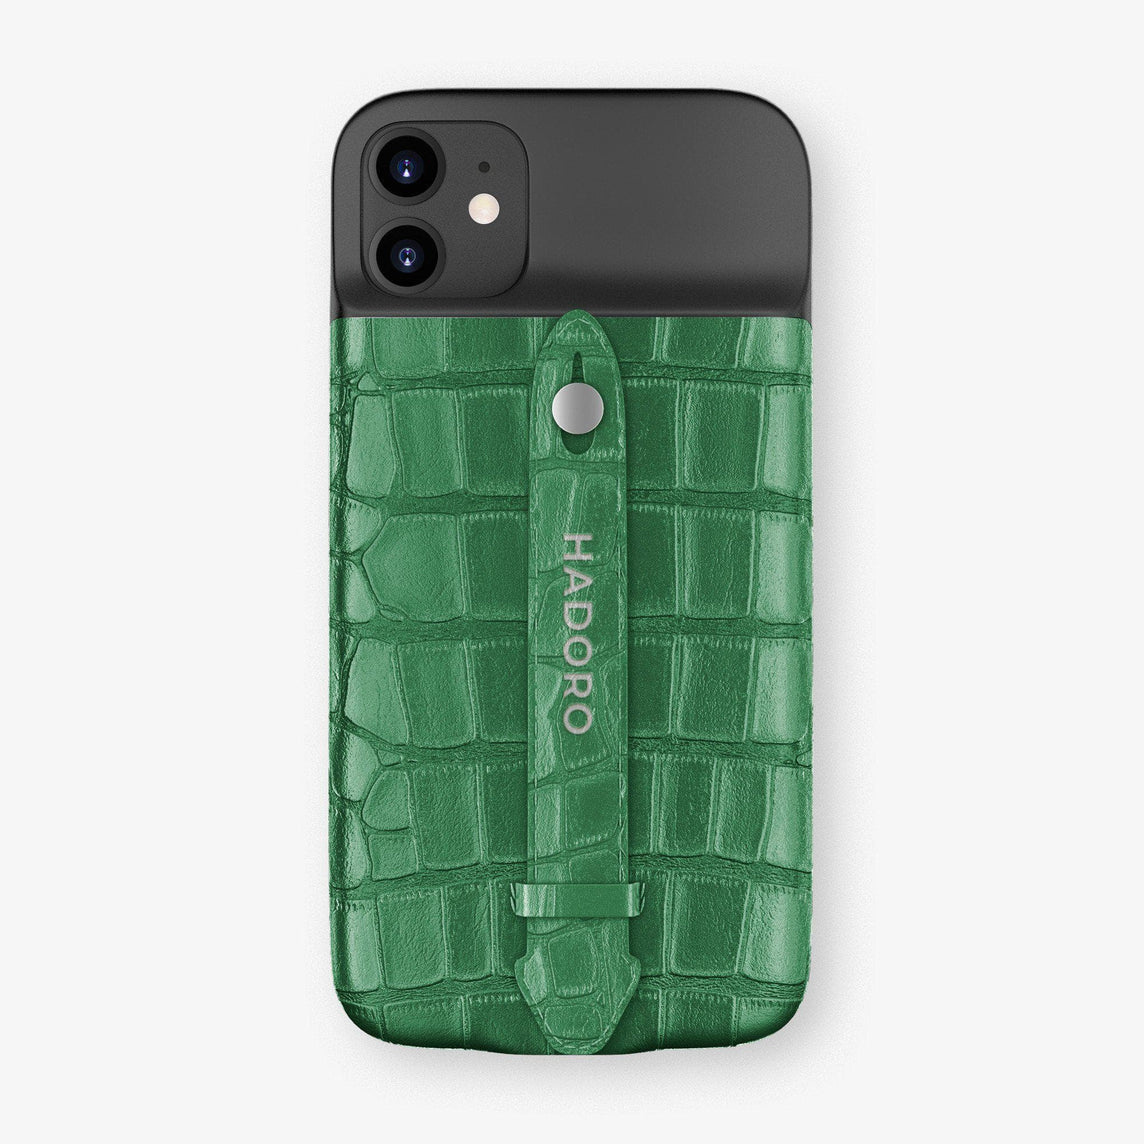 Alligator Battery Finger Case for iPhone 11 | Green Emerald/Green Emerald - Stainless Steel